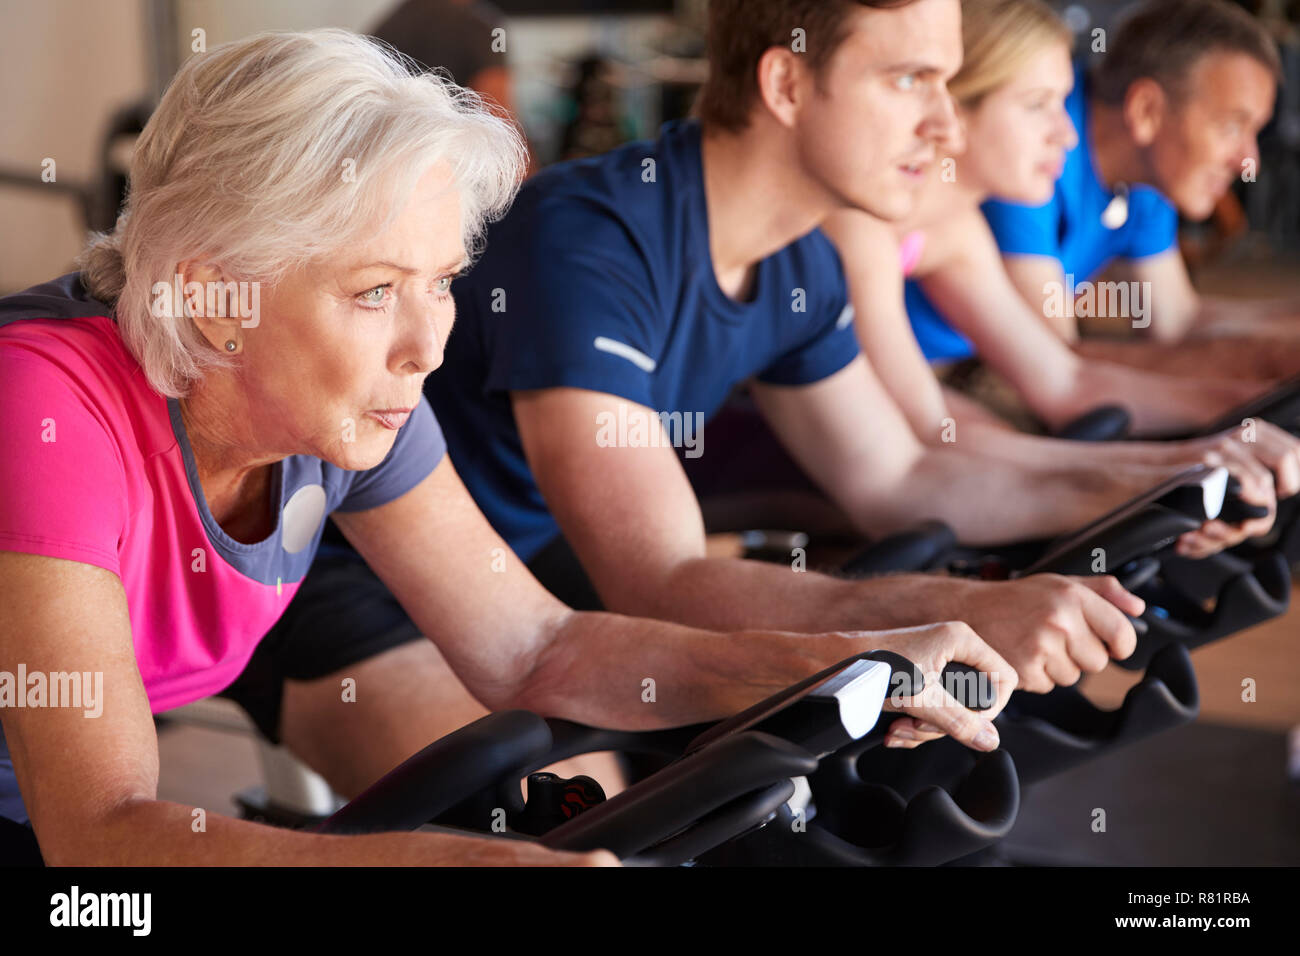 Close Up Of Group Taking Spin Class In Gym Stock Photo